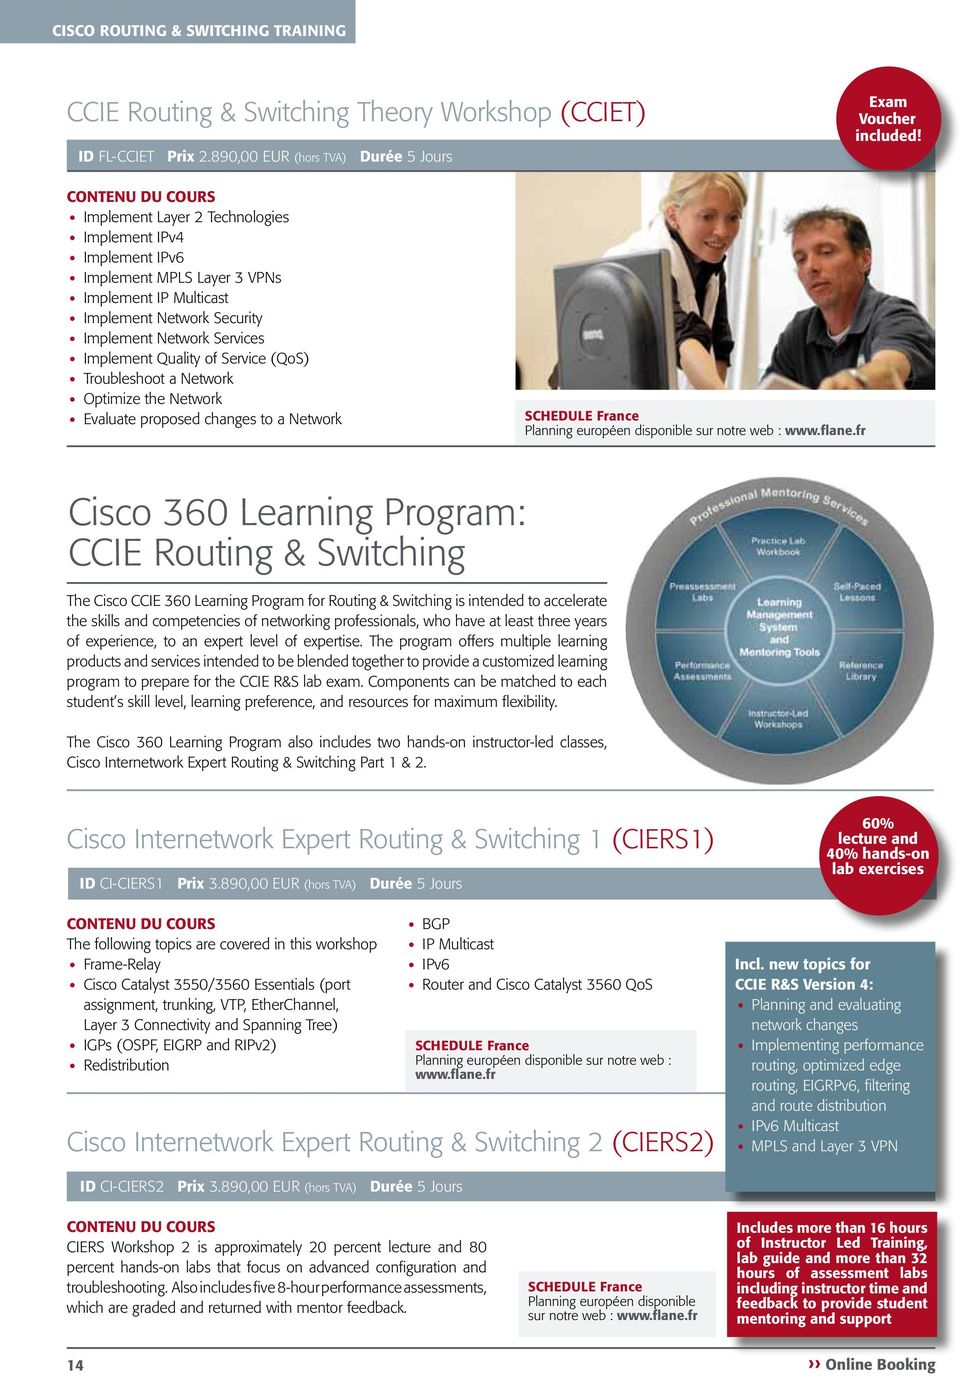 (QoS) Troubleshoot a Network Optimize the Network Evaluate proposed changes to a Network Cisco 360 Learning Program: CCIE Routing & Switching The Cisco CCIE 360 Learning Program for Routing &